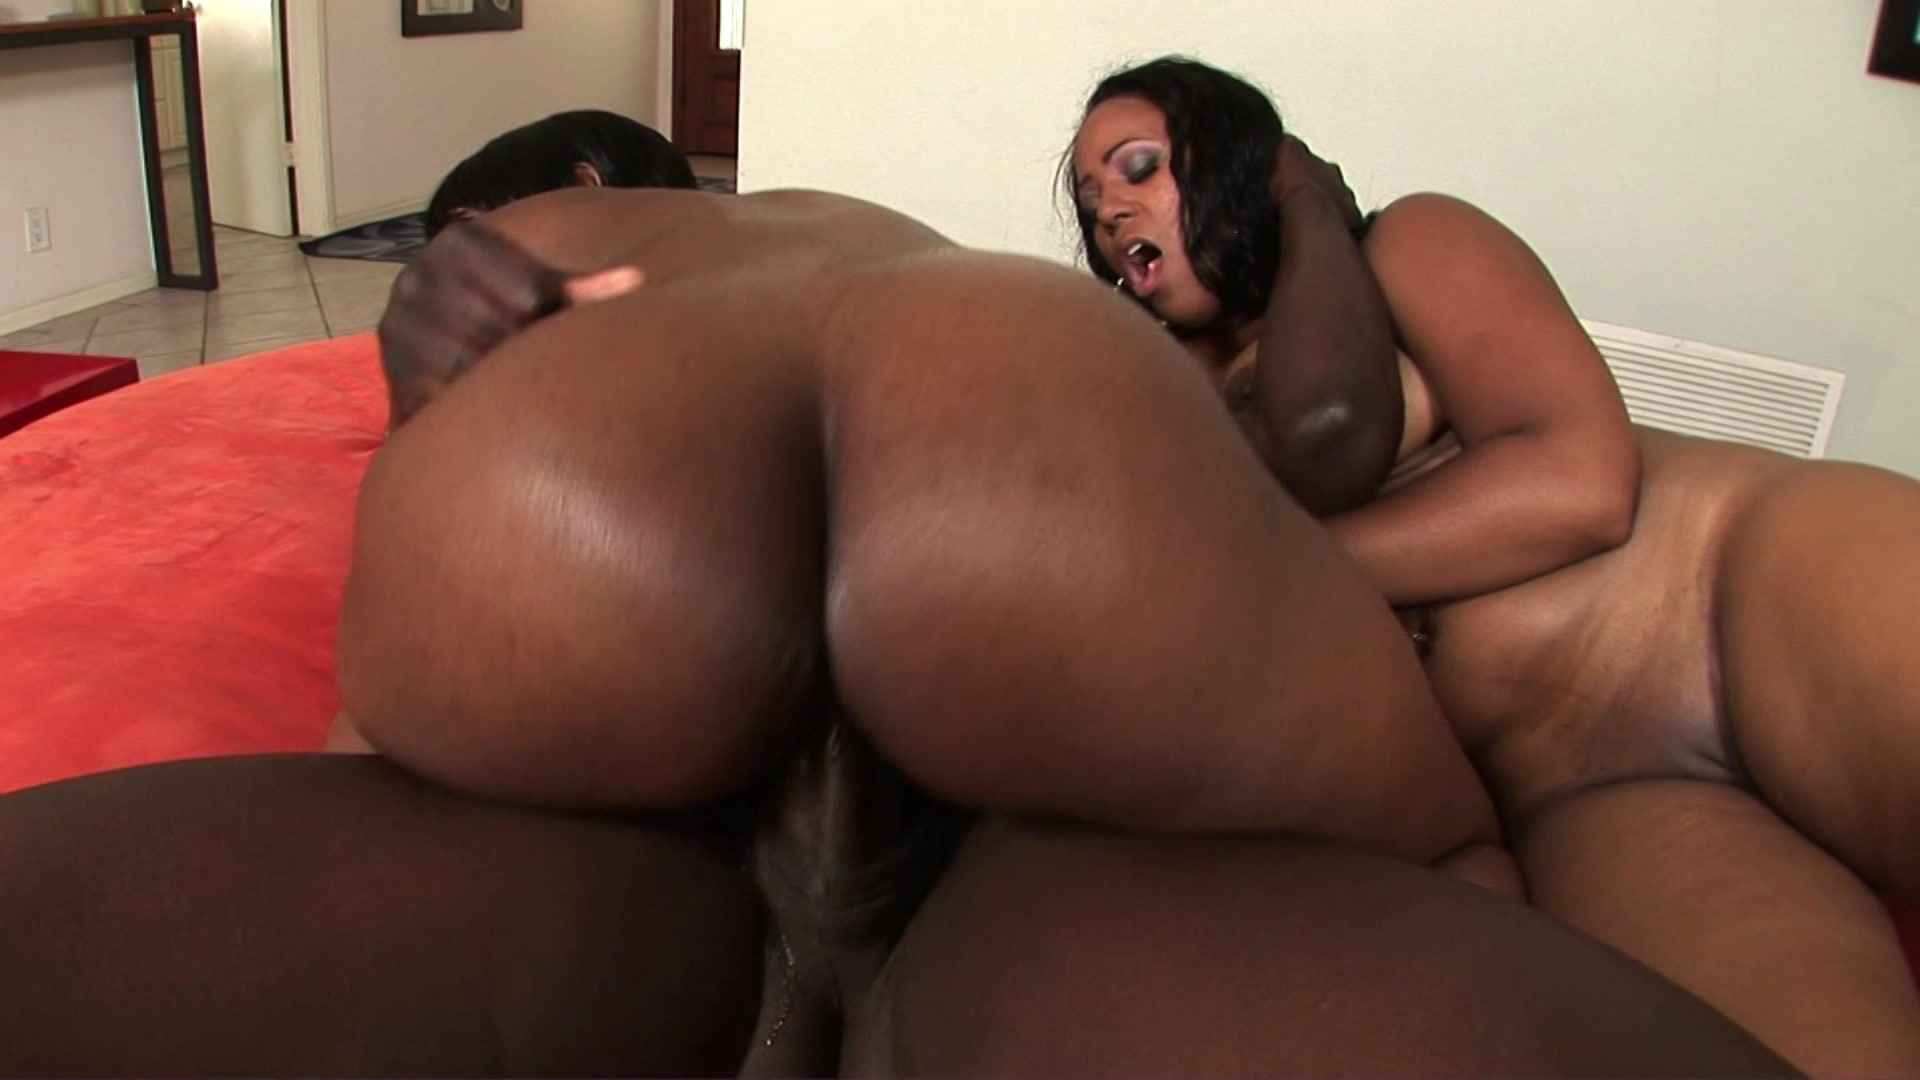 image-amrita-black-ass-bouncing-girls